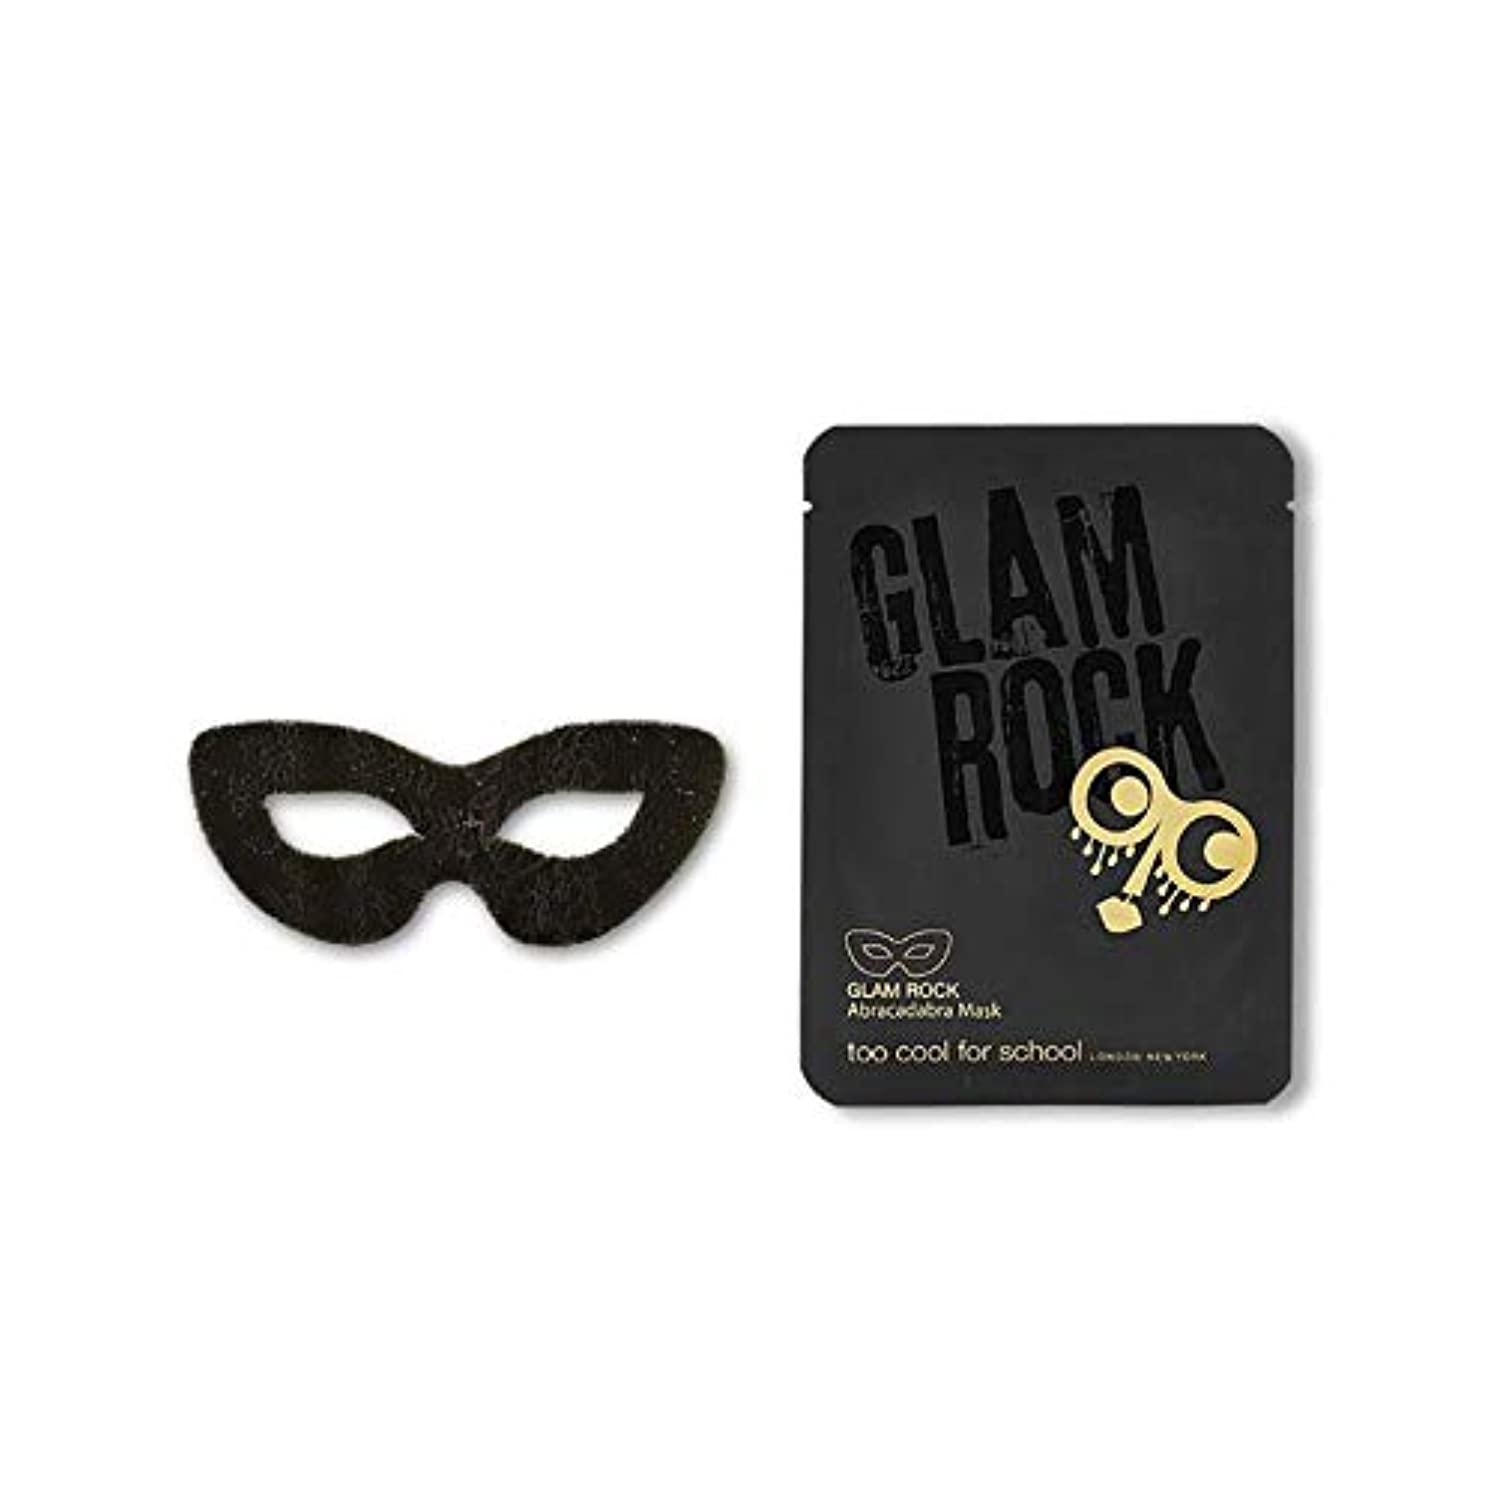 疲労ゆりストッキングTOO COOL FOR SCHOOL Glam Rock Abracadabra Mask (並行輸入品)